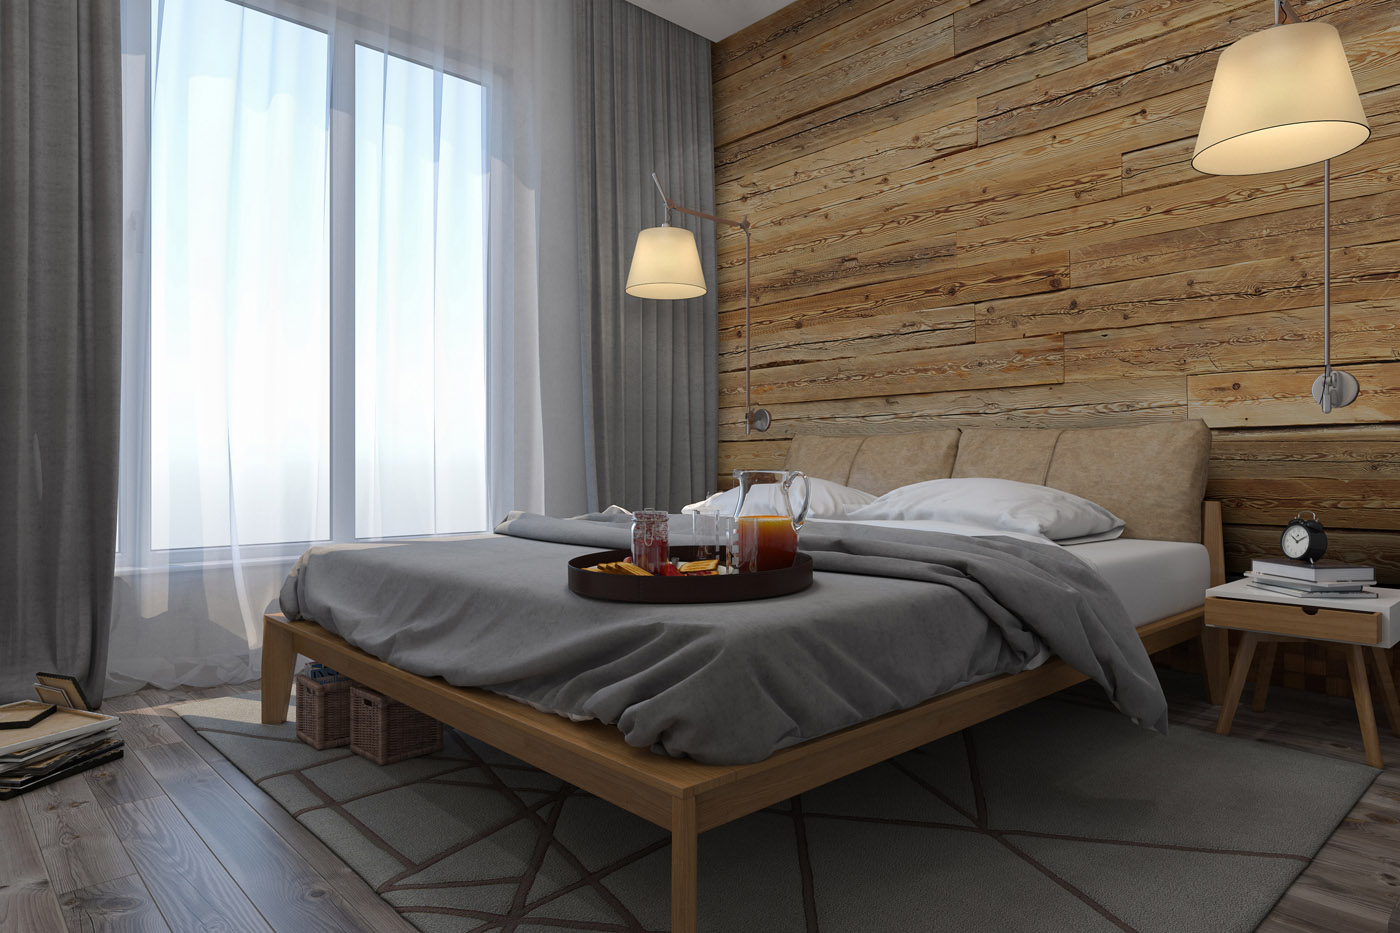 Reclaimed wood in bedroom interior